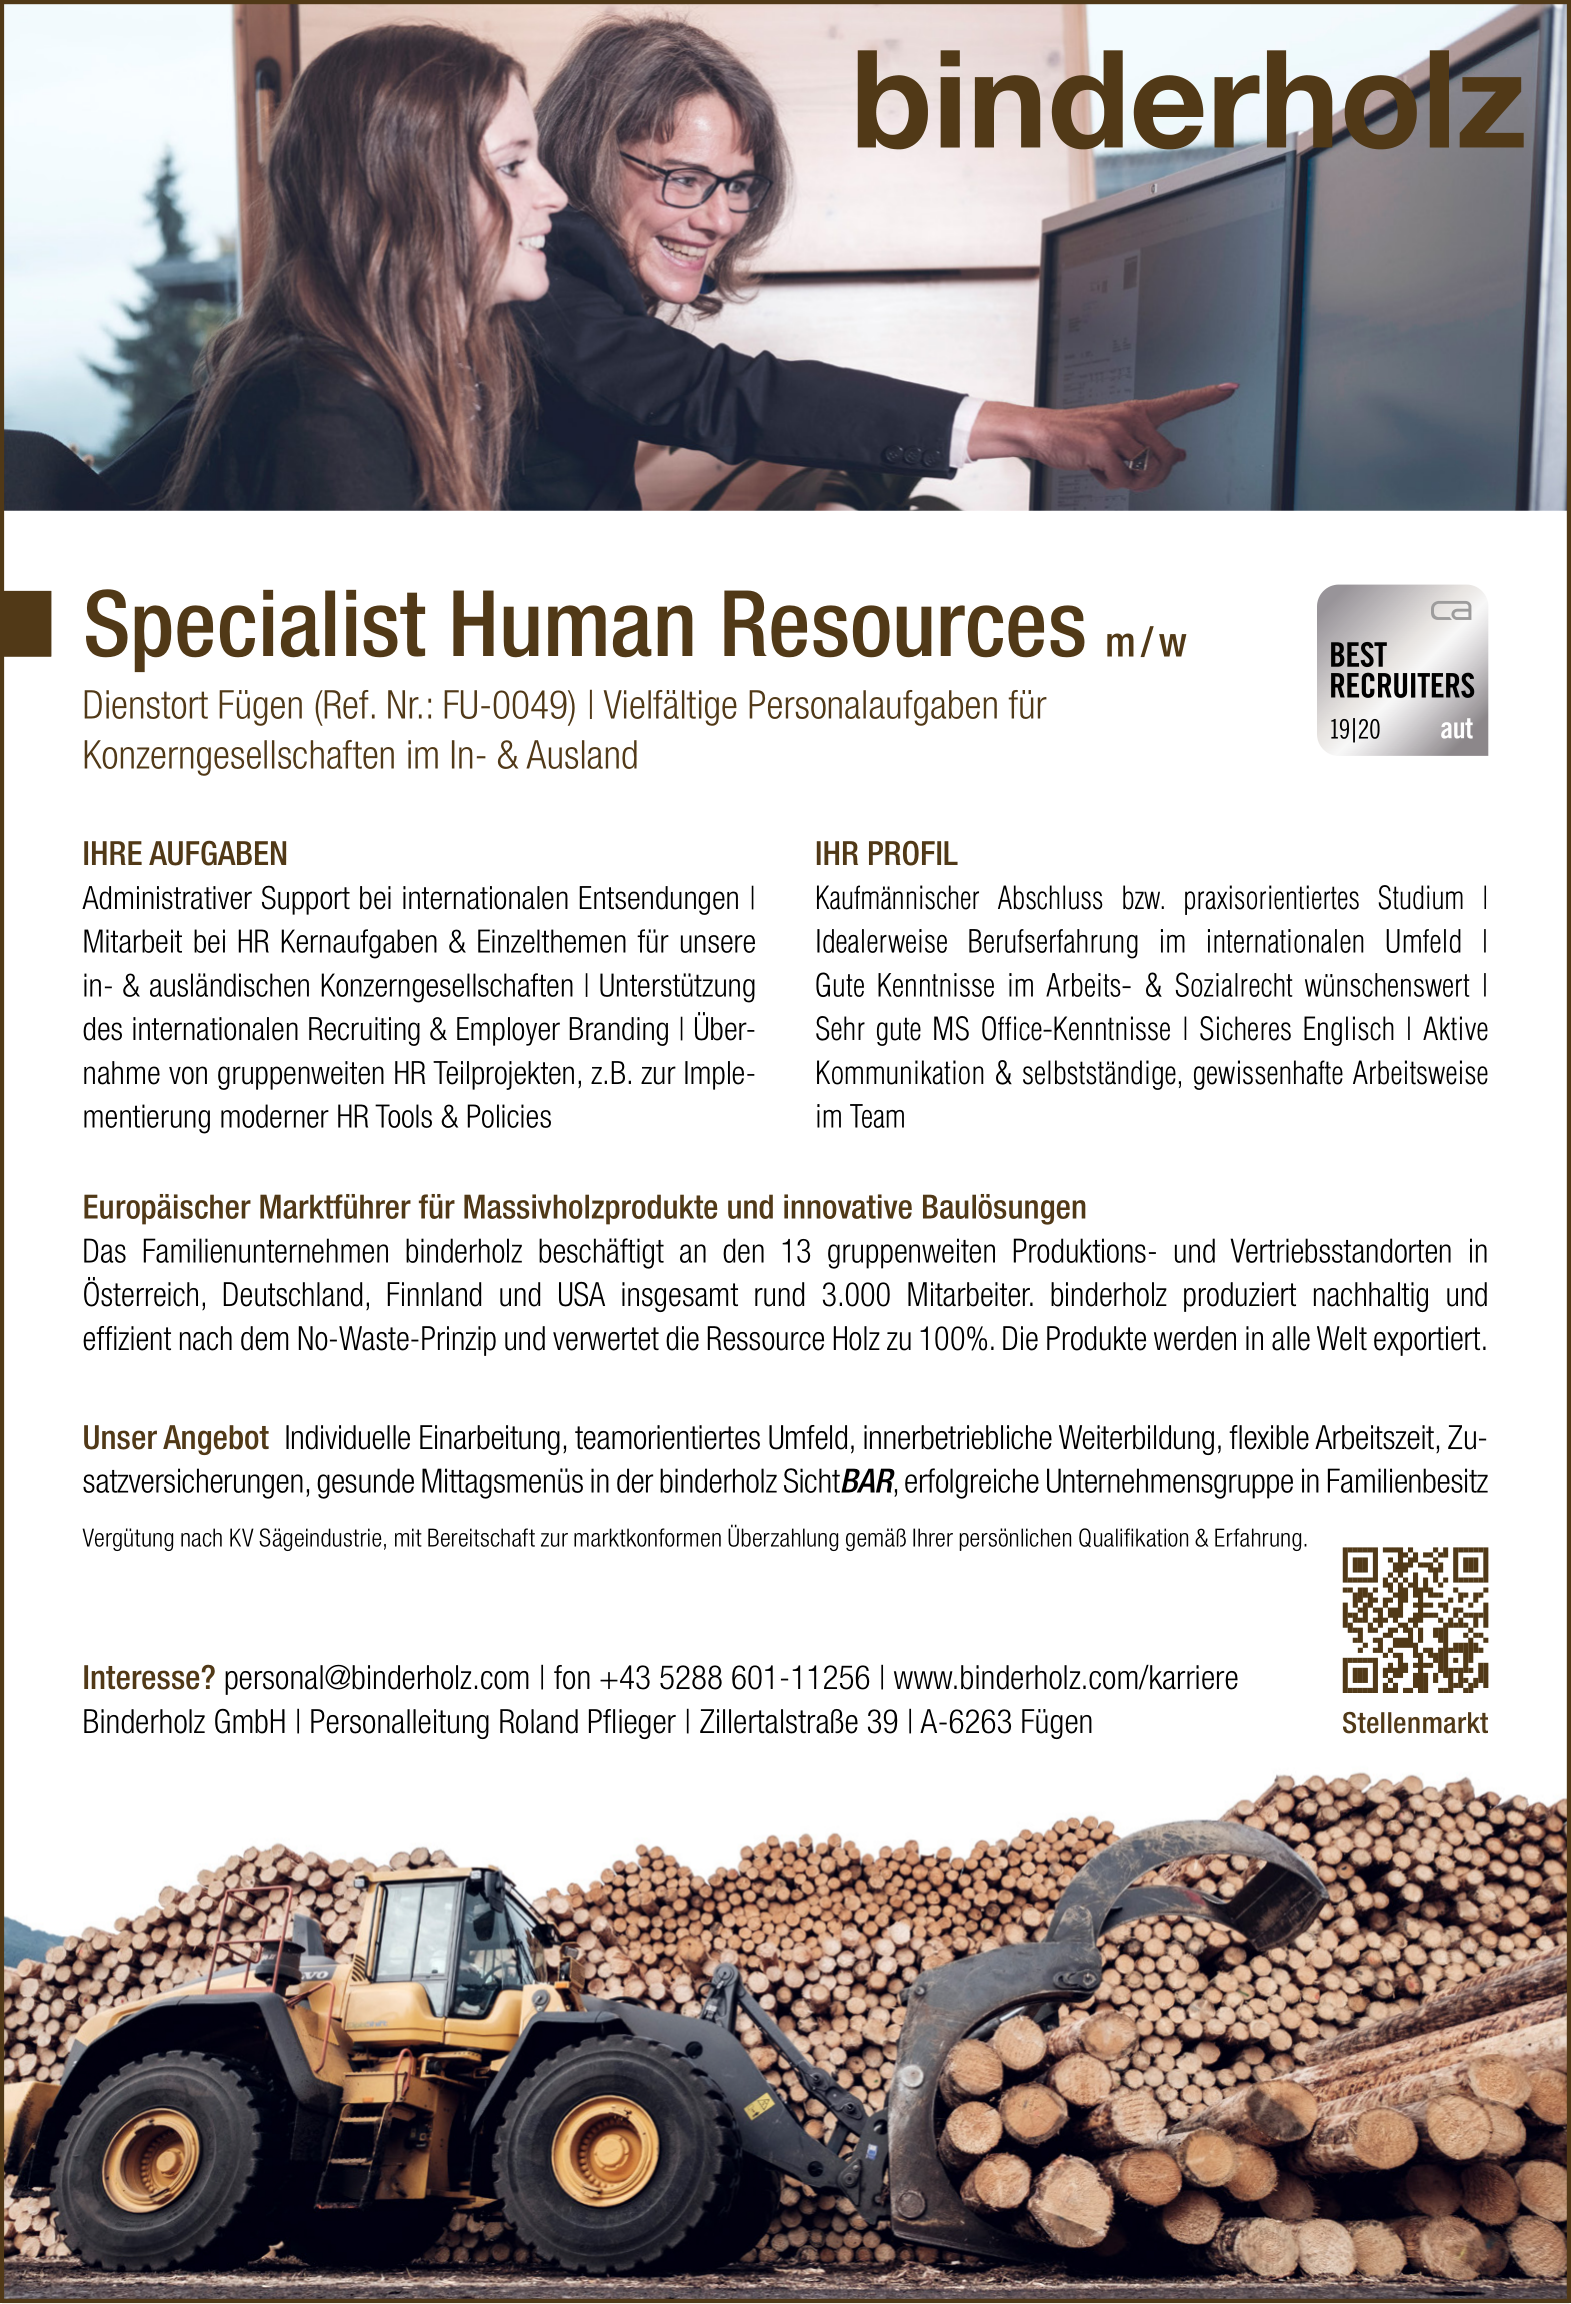 Specialist Human Resources m/w